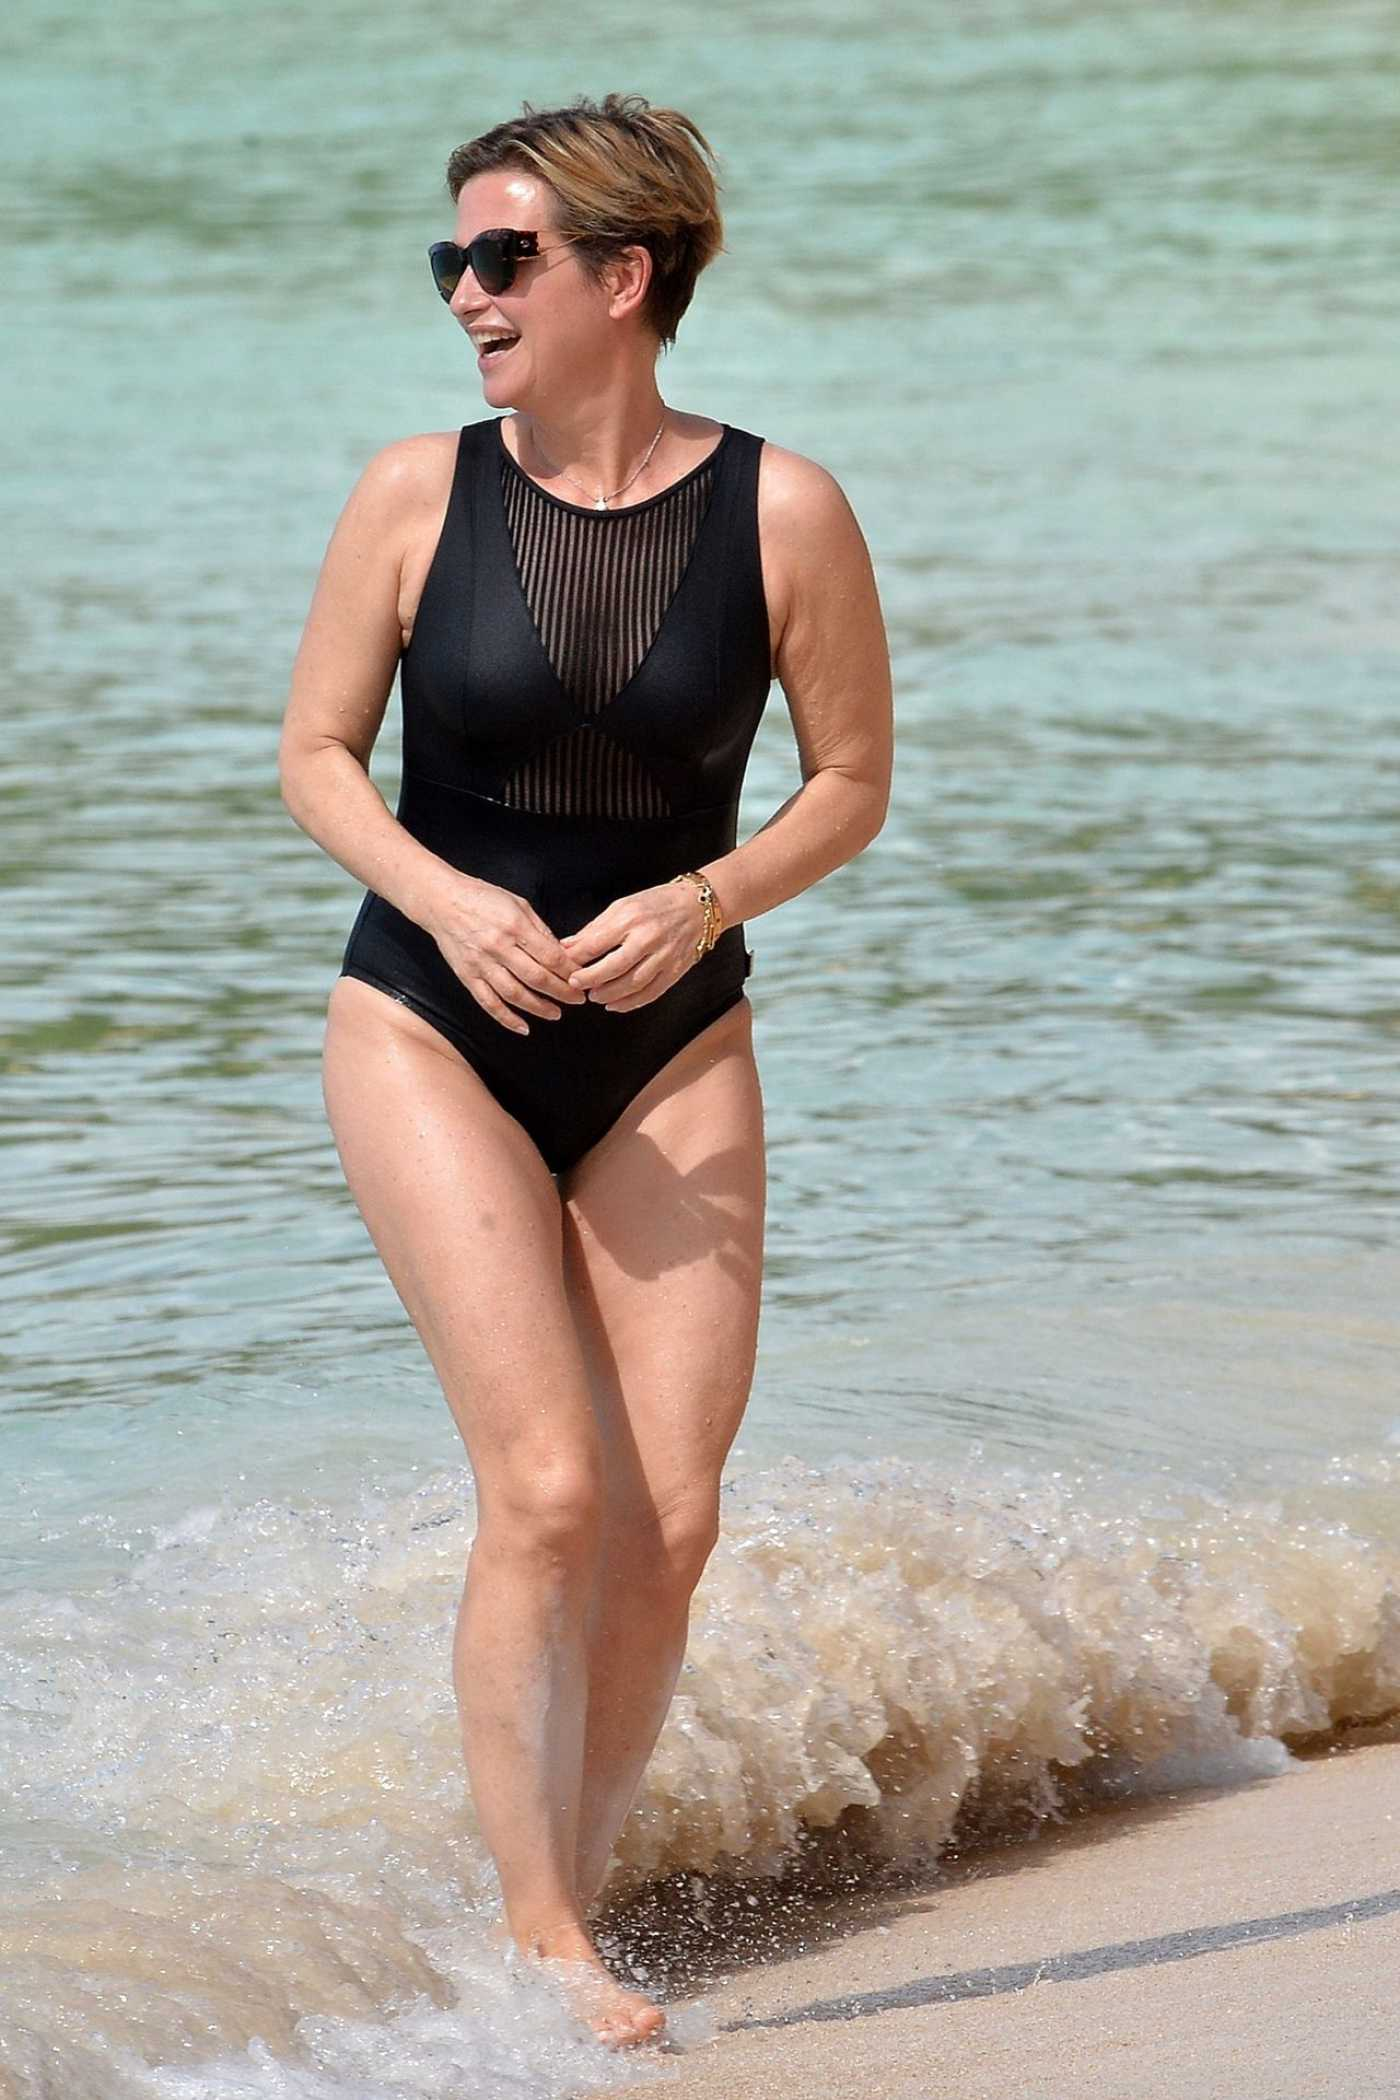 Emma Forbes in a Black Swimsuit on the Beach in Barbados 01/01/2020